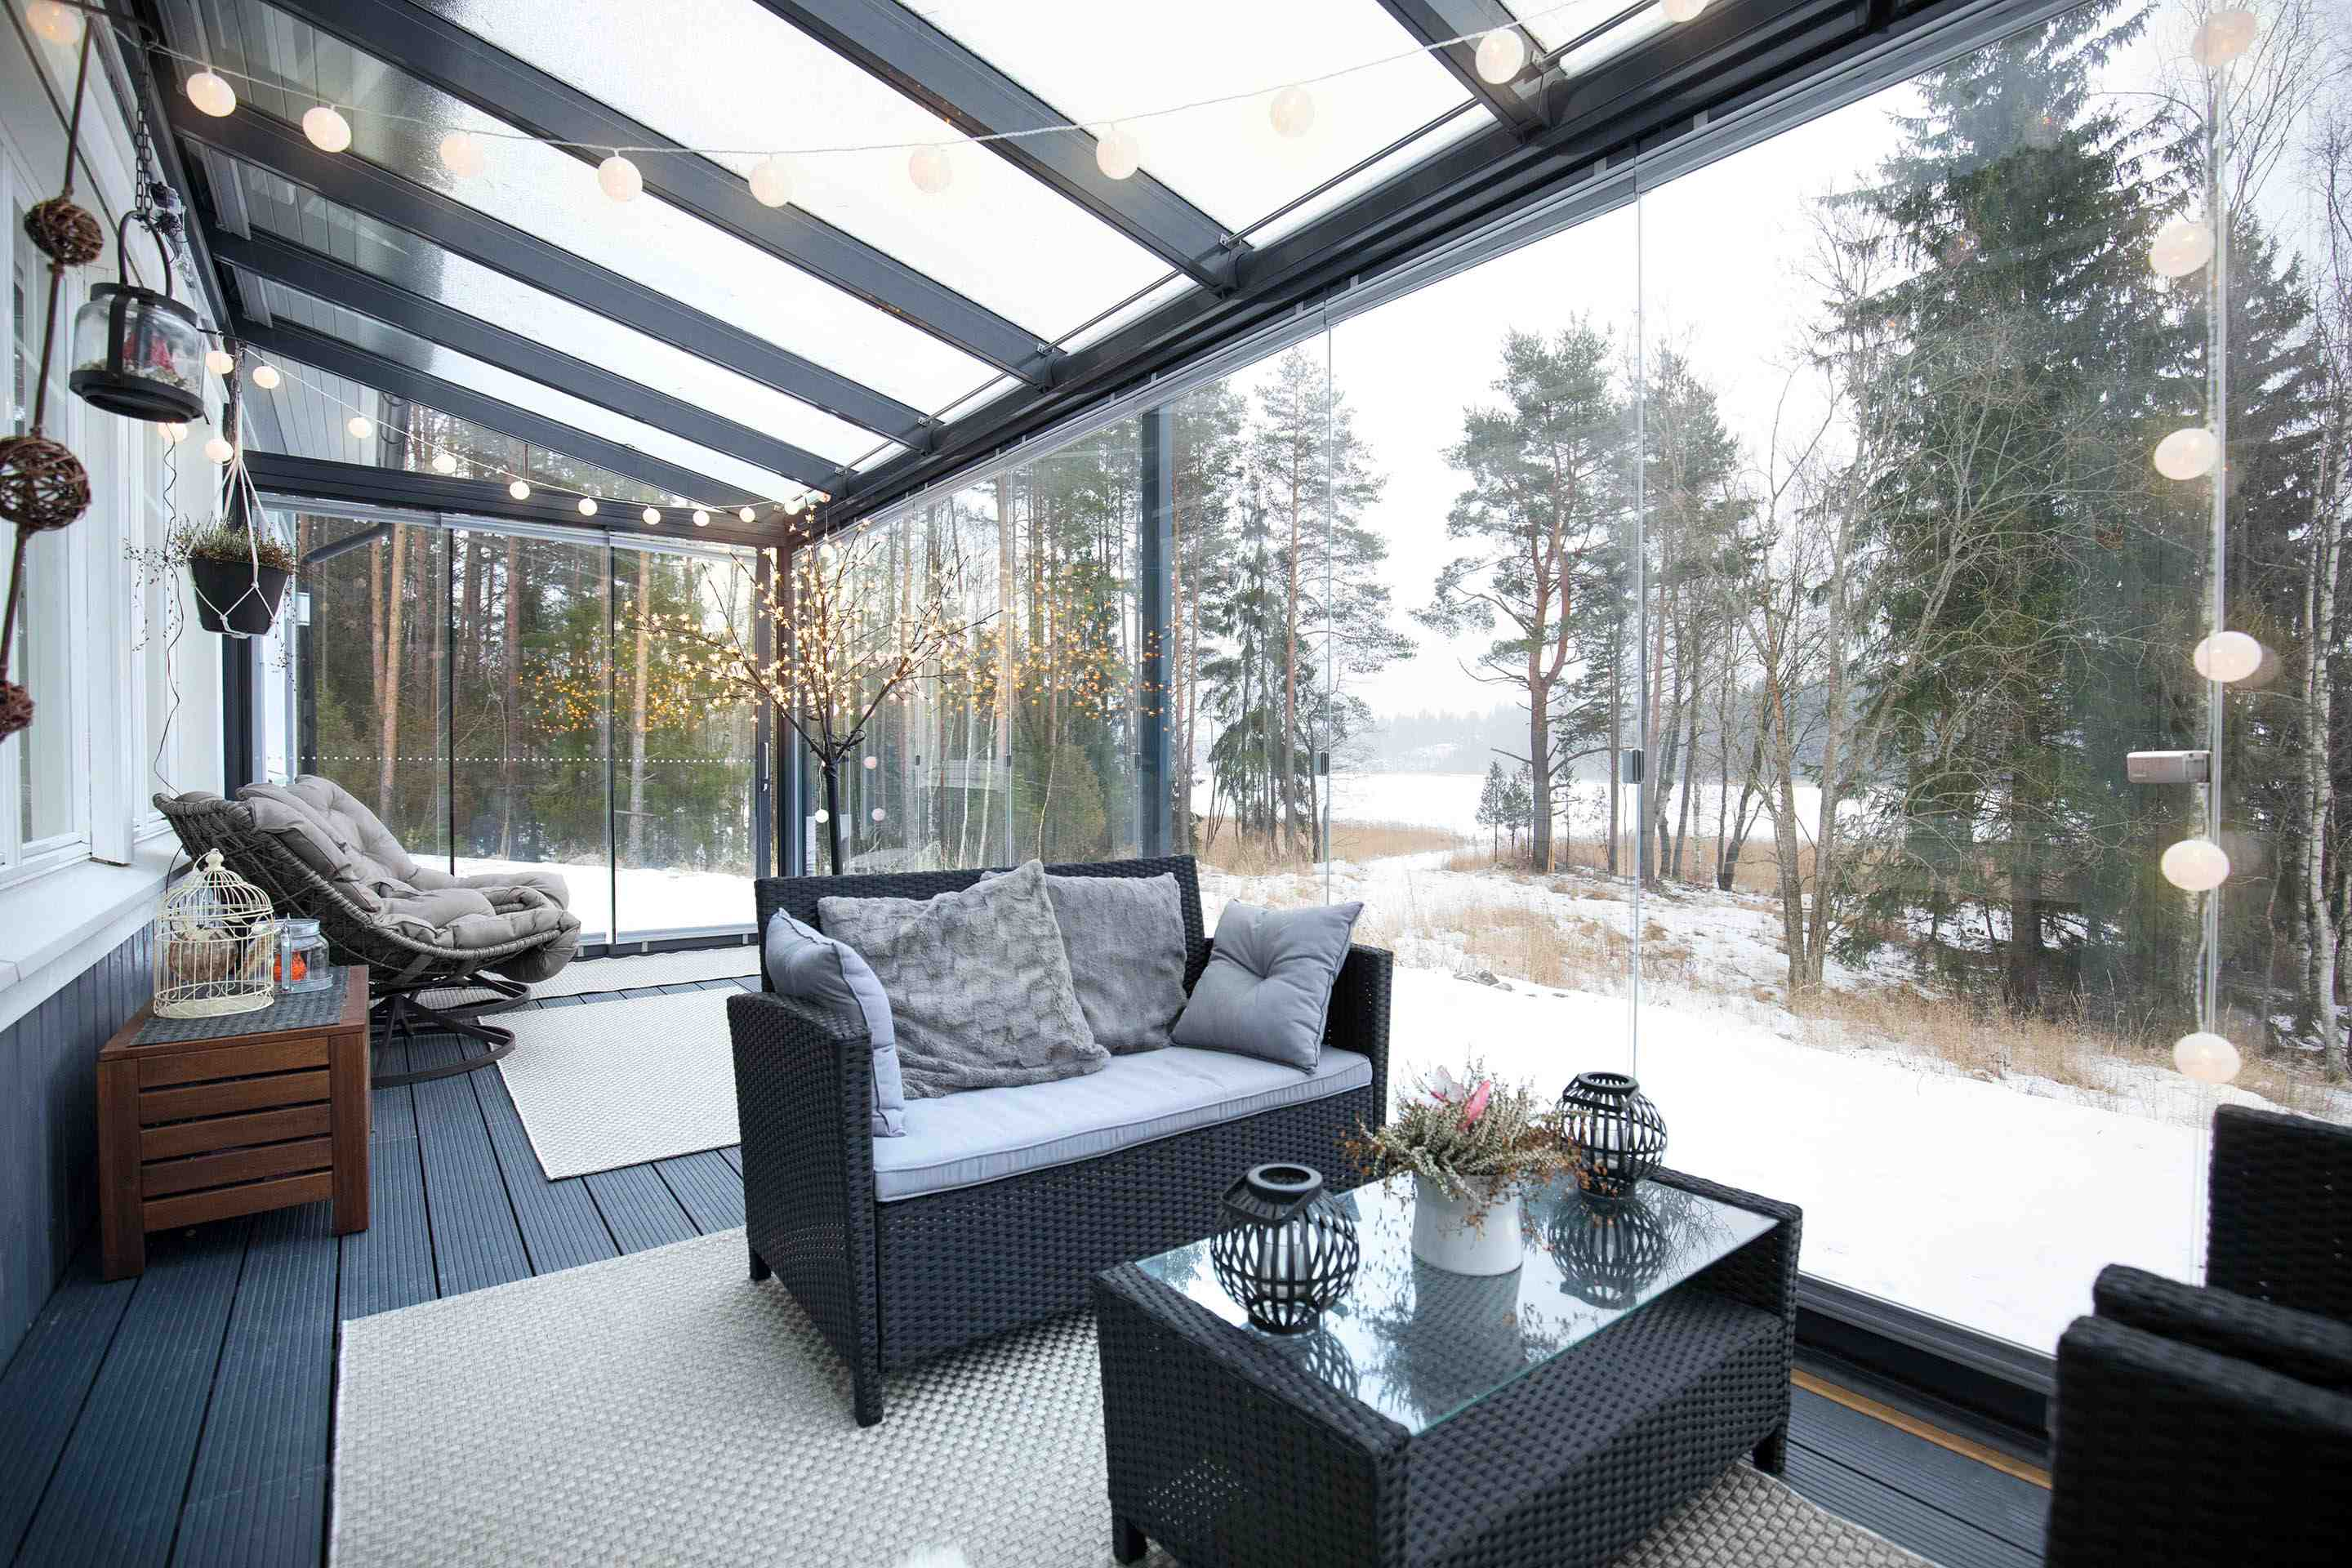 winter sunroom, glass sunroom, glass enclosure, sunroom installation, sunroom addition near me, sunroom companies, four season sunrooms, beautiful sunrooms, sunroom